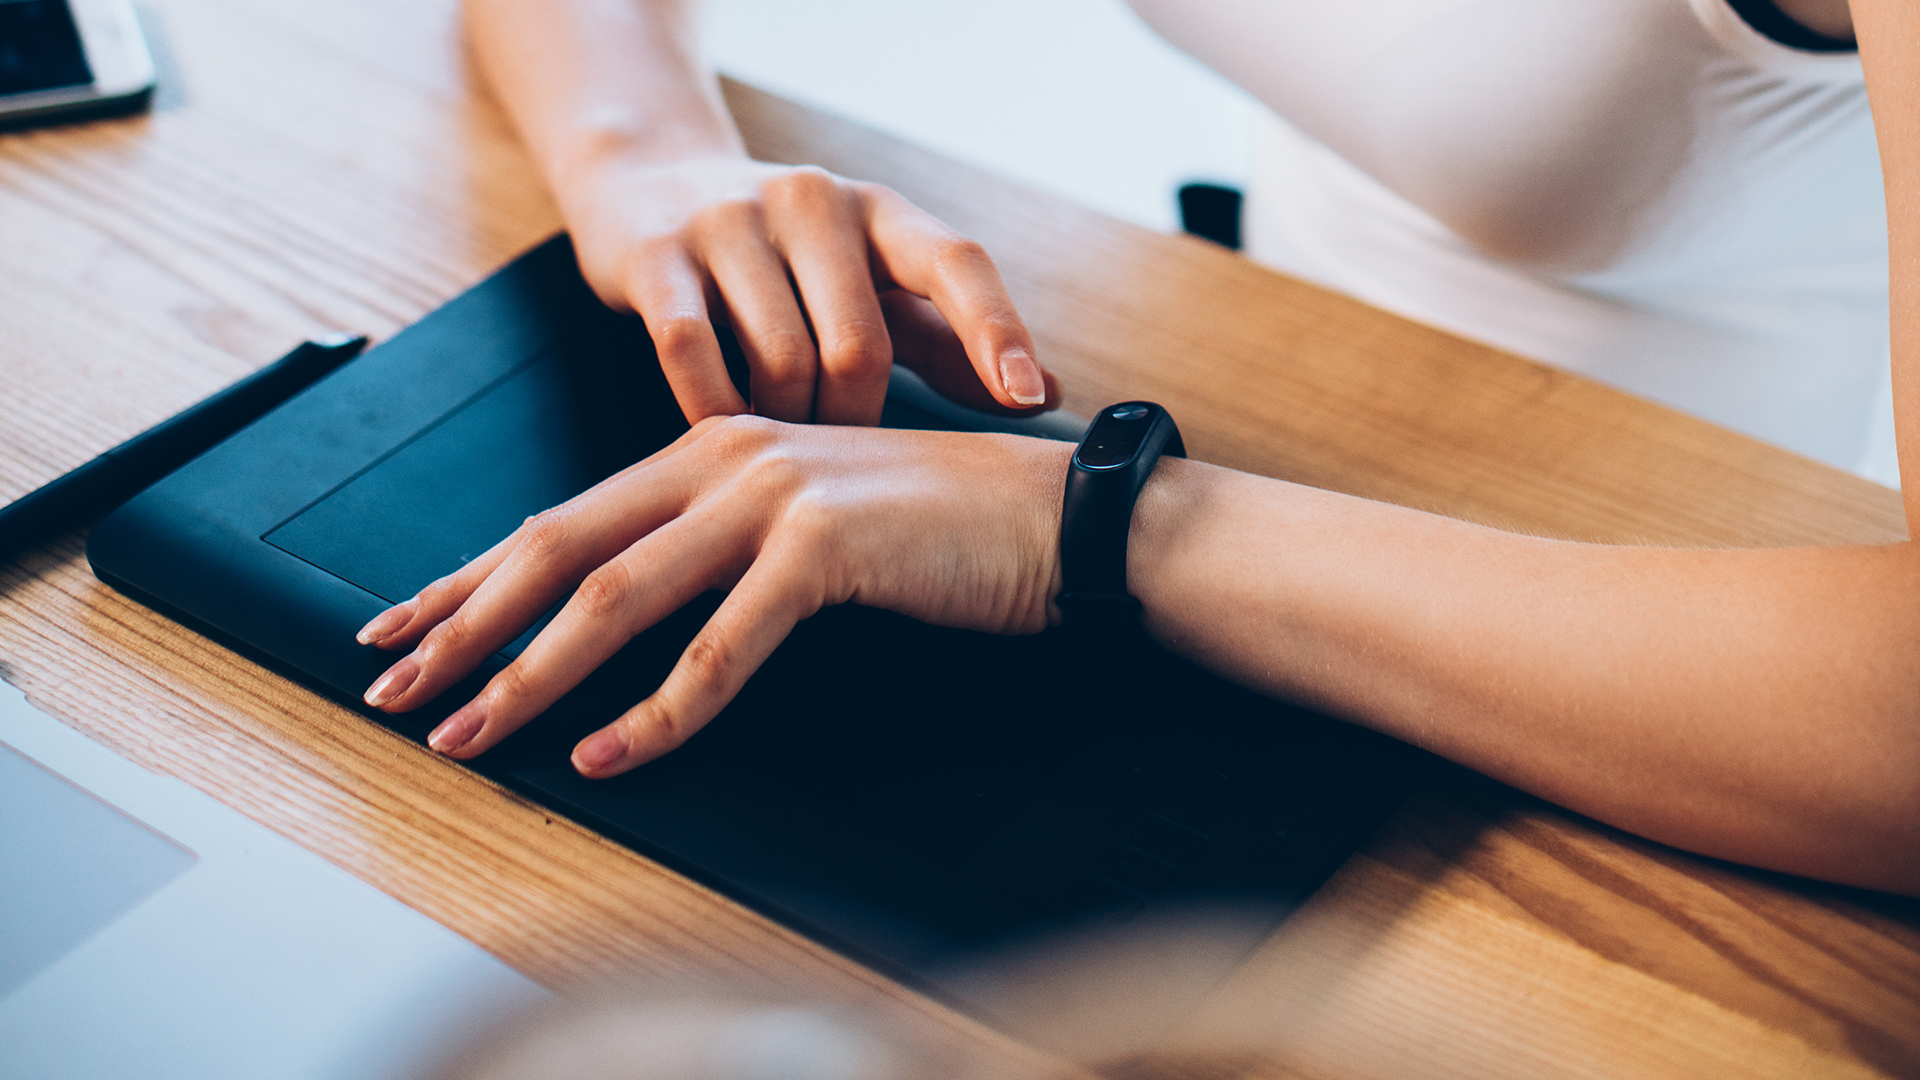 Wearable fitness trackers can be a fun and effective way to improve health in the workplace.